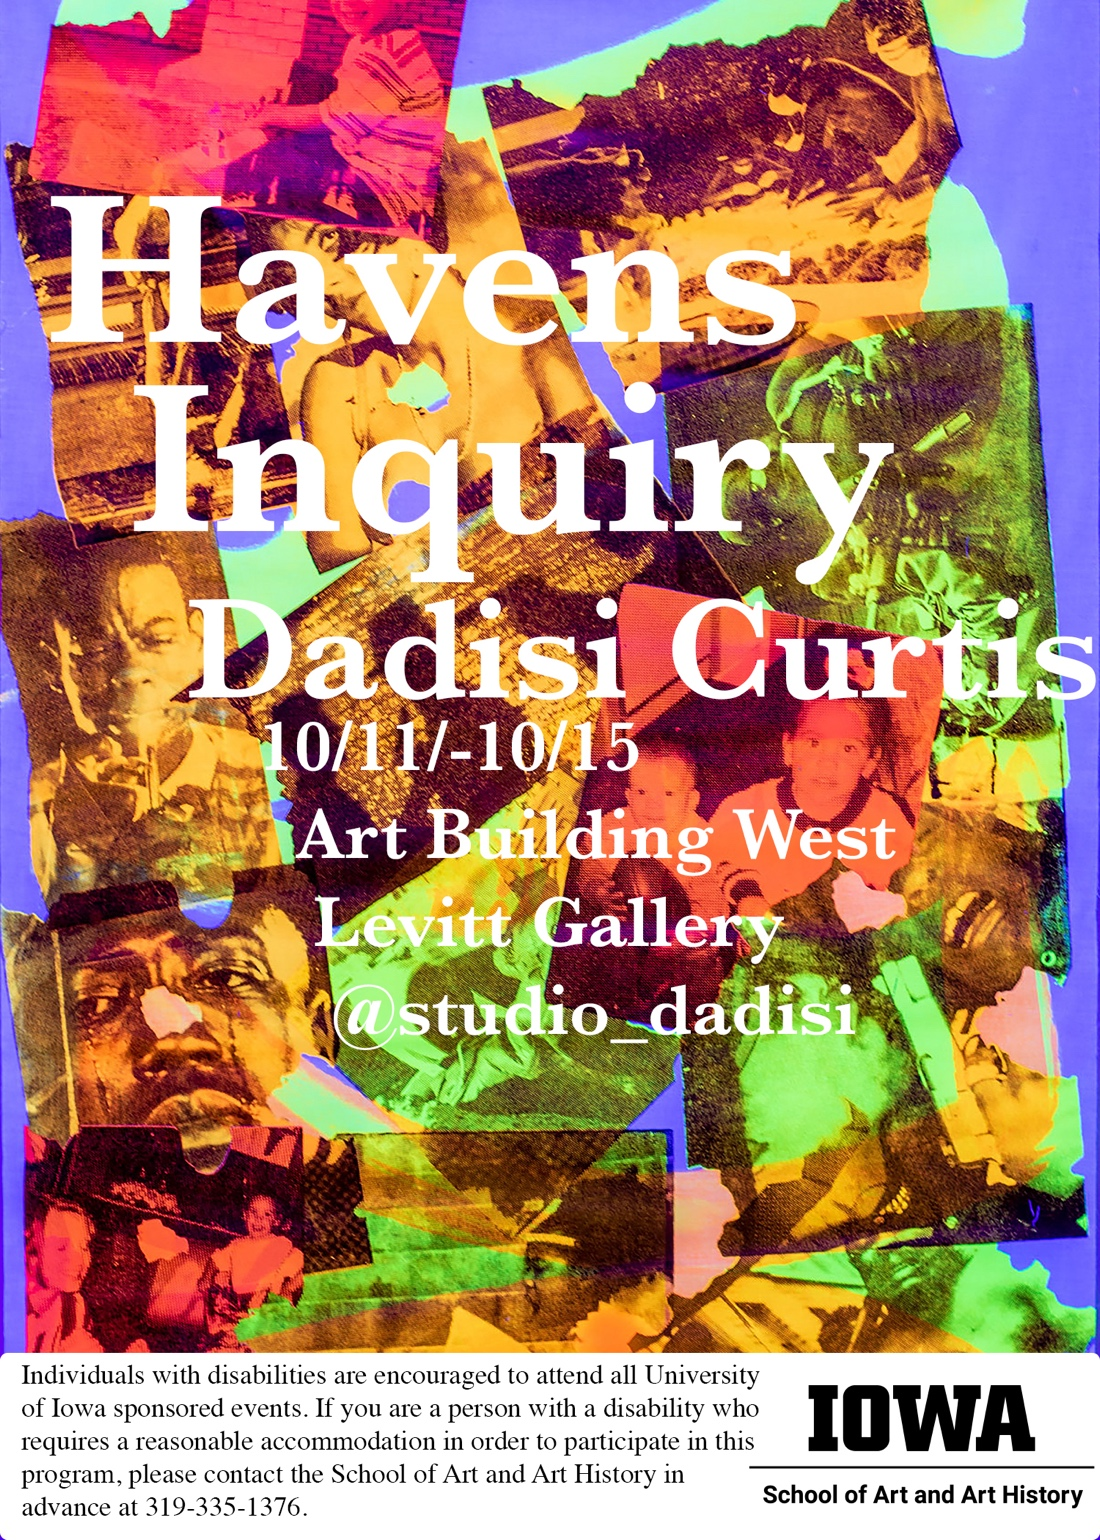 """Multi colored images on blue/purple background show card for Dadisi Curtis """"Havens Inquiry"""""""